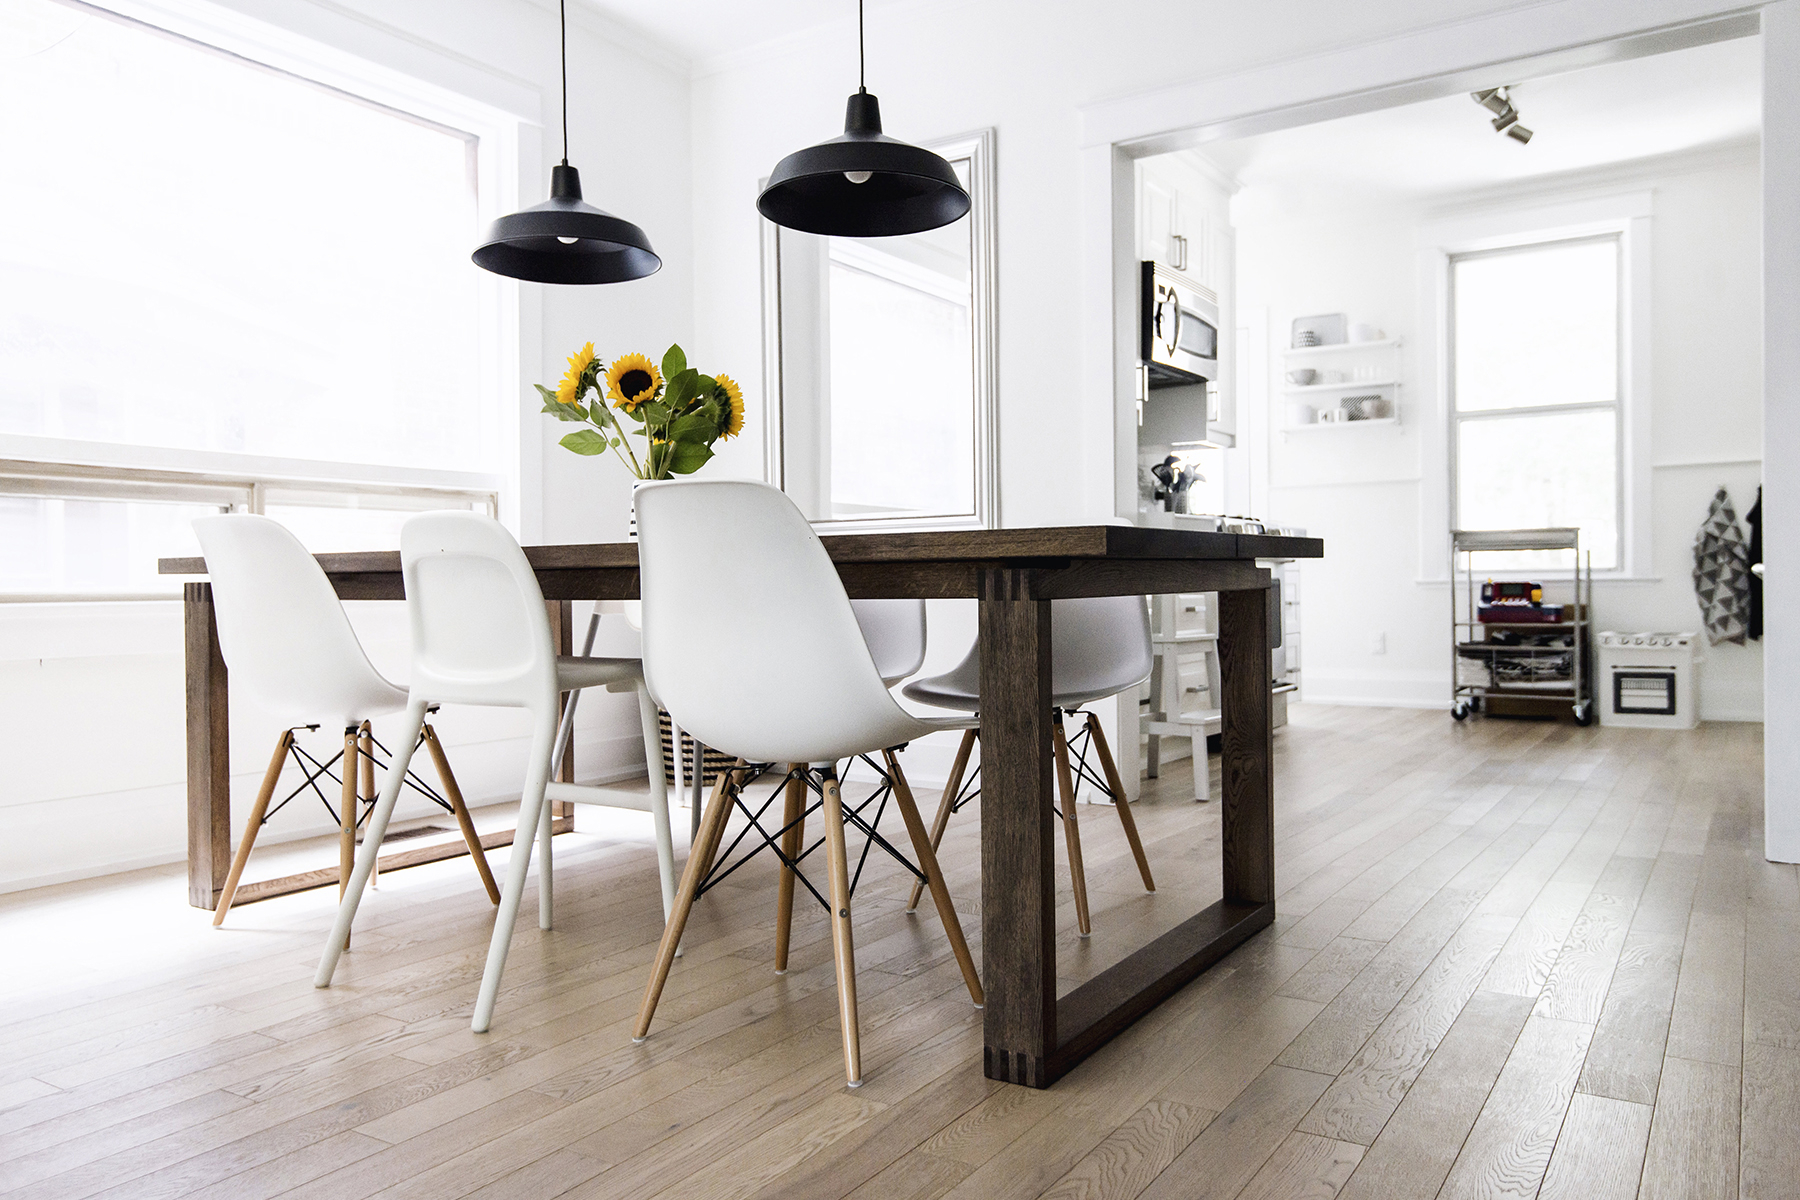 Widely Used Eames Style Dining Tables With Wooden Legs With Regard To House Tour: Dining Room (View 6 of 16)